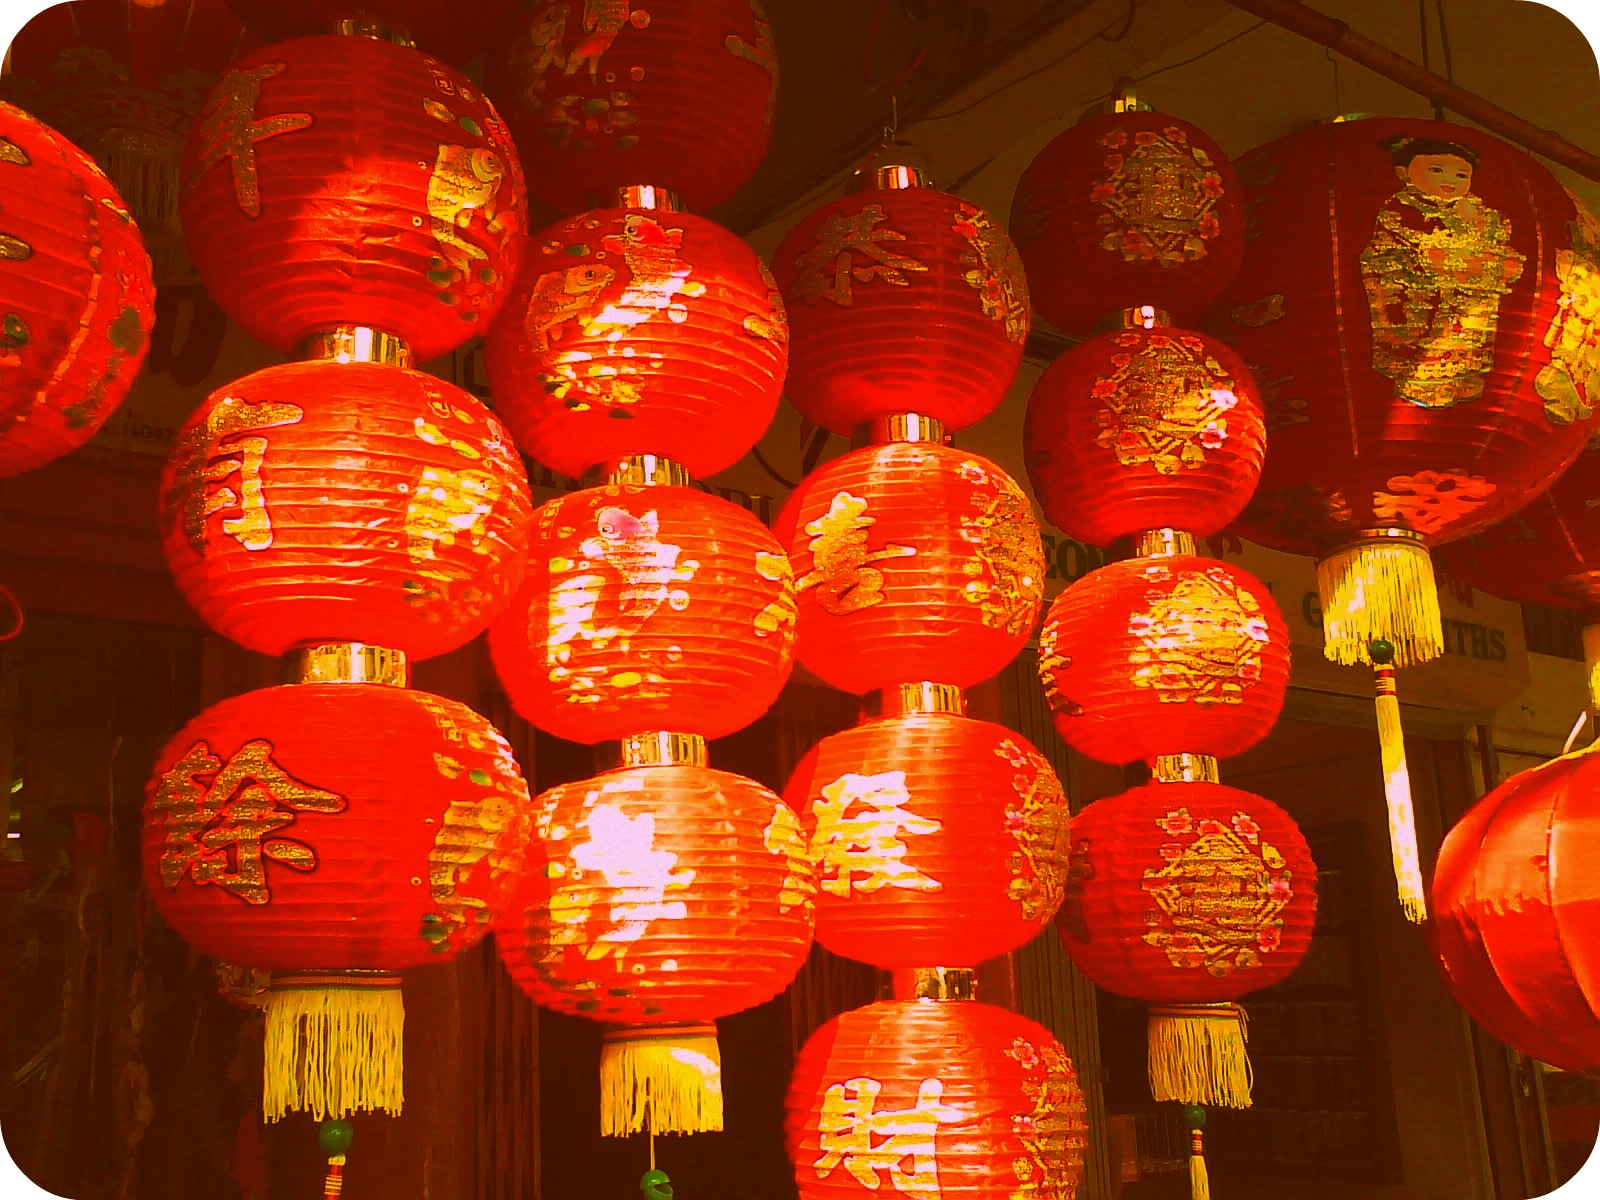 Lot 50 White Paper Chinese Lanterns Sky Fire Fly Candle ...  |Chinese Lanterns